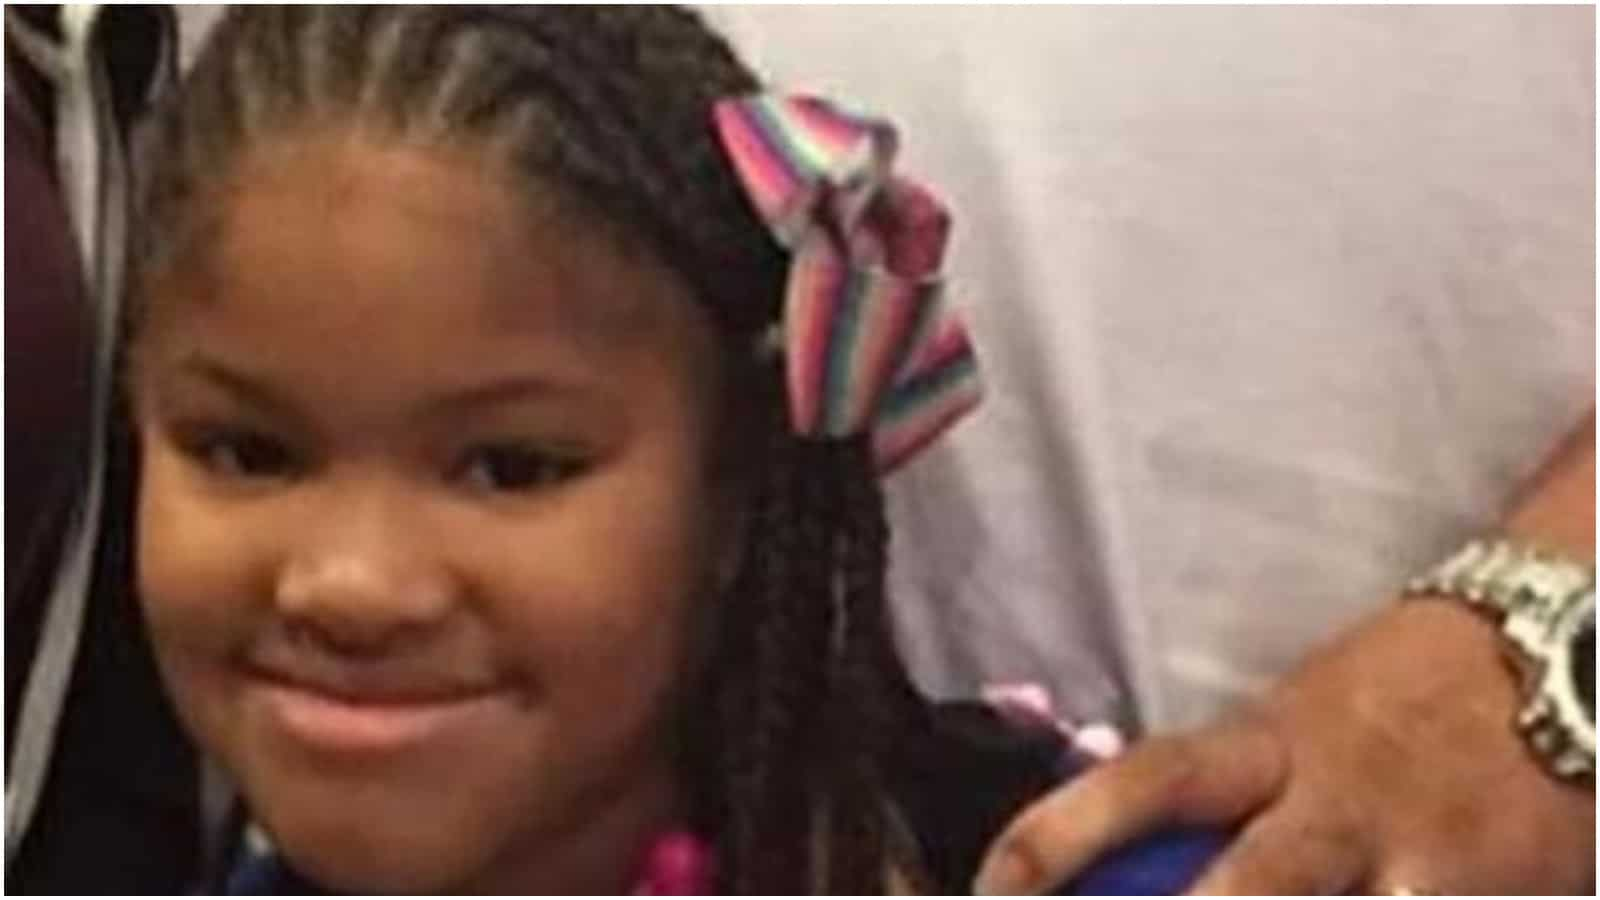 7-Year-Old Killed in Shooting, Family, Activists Seek Justice